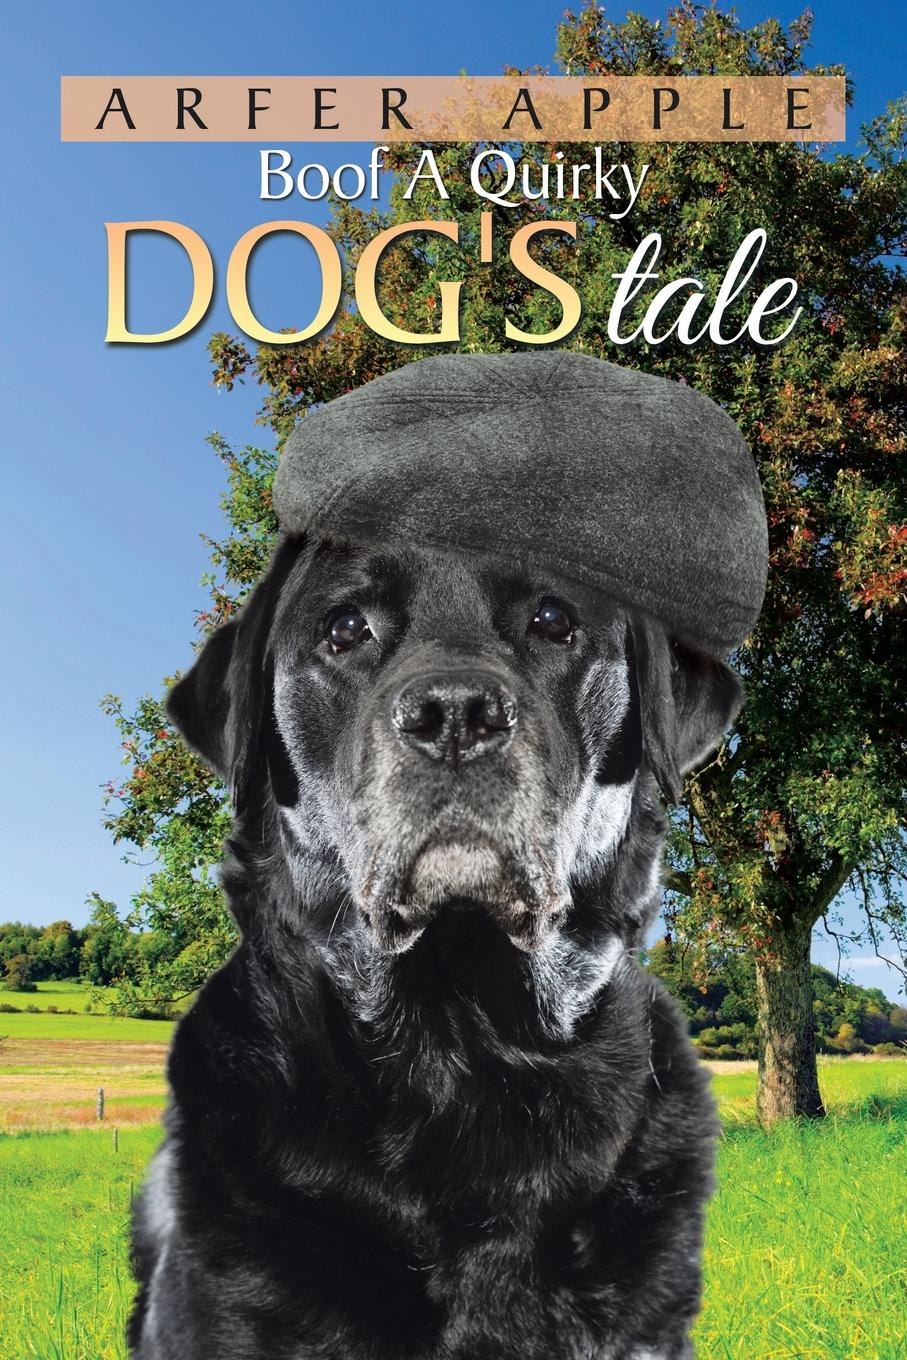 Arfer Apple Boof A Quirky Dogs Tale